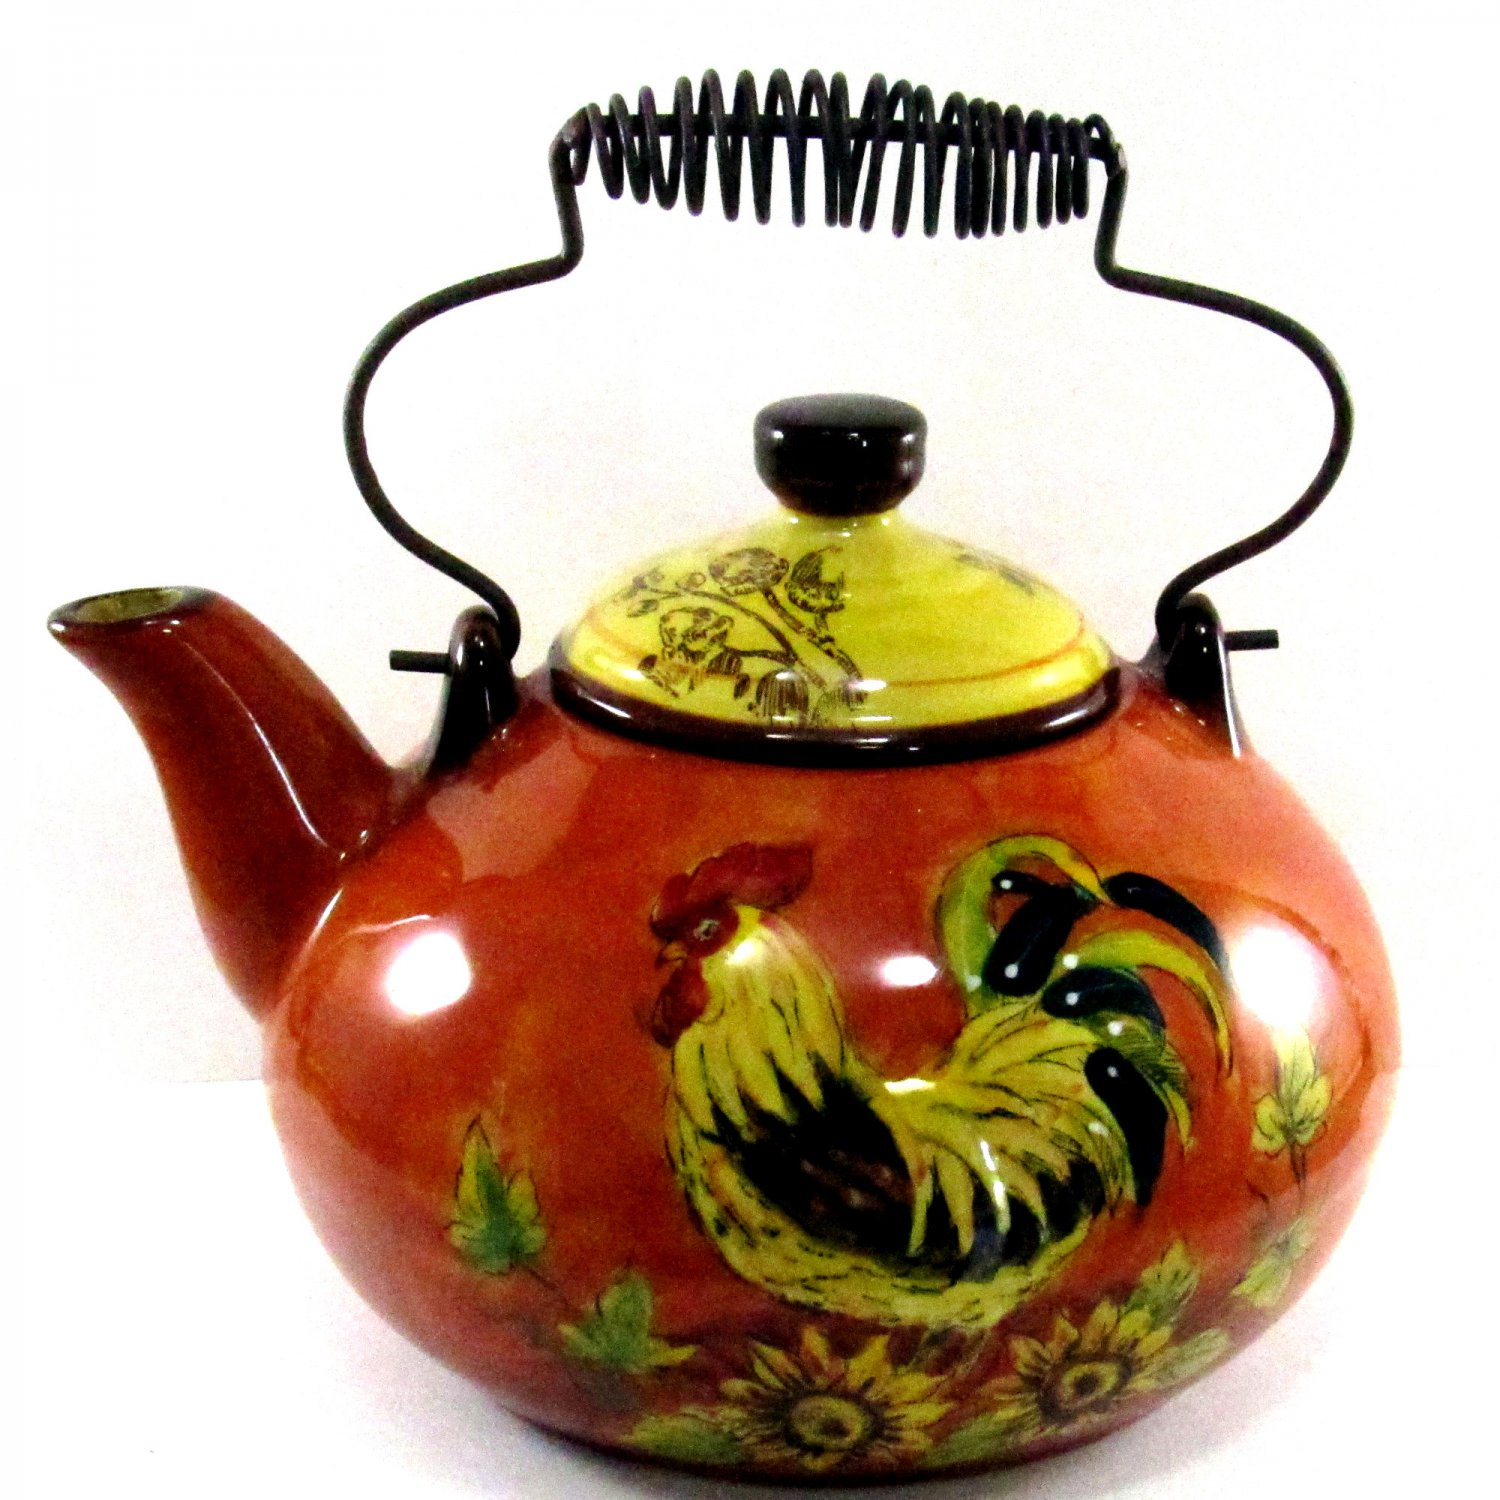 SOLD Orange Rooster Teapot by Maxcera 9 Inches Tall Wire Handle Orange with Sunflowers